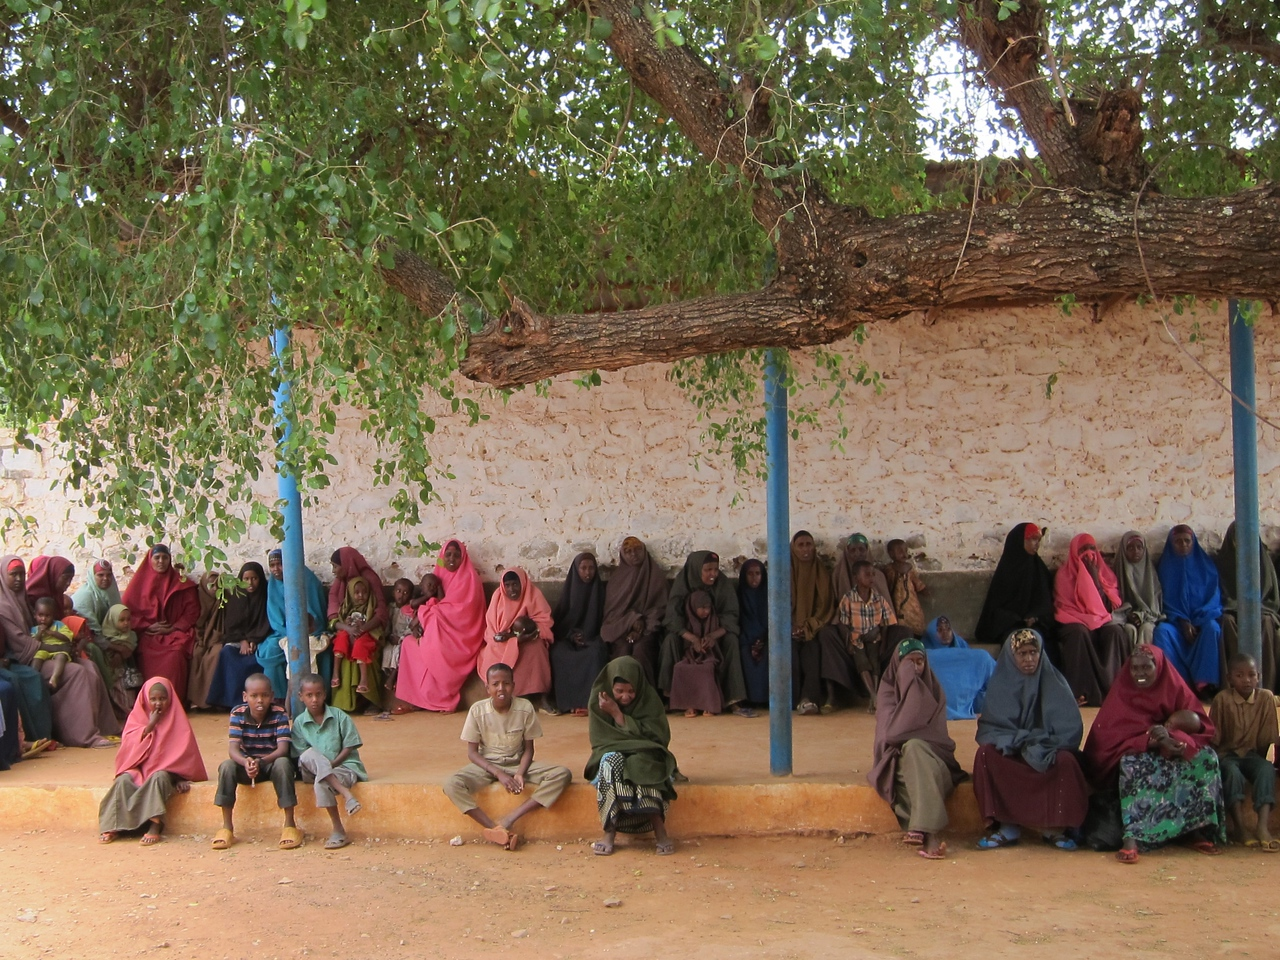 mothers waiting in line at the clinic